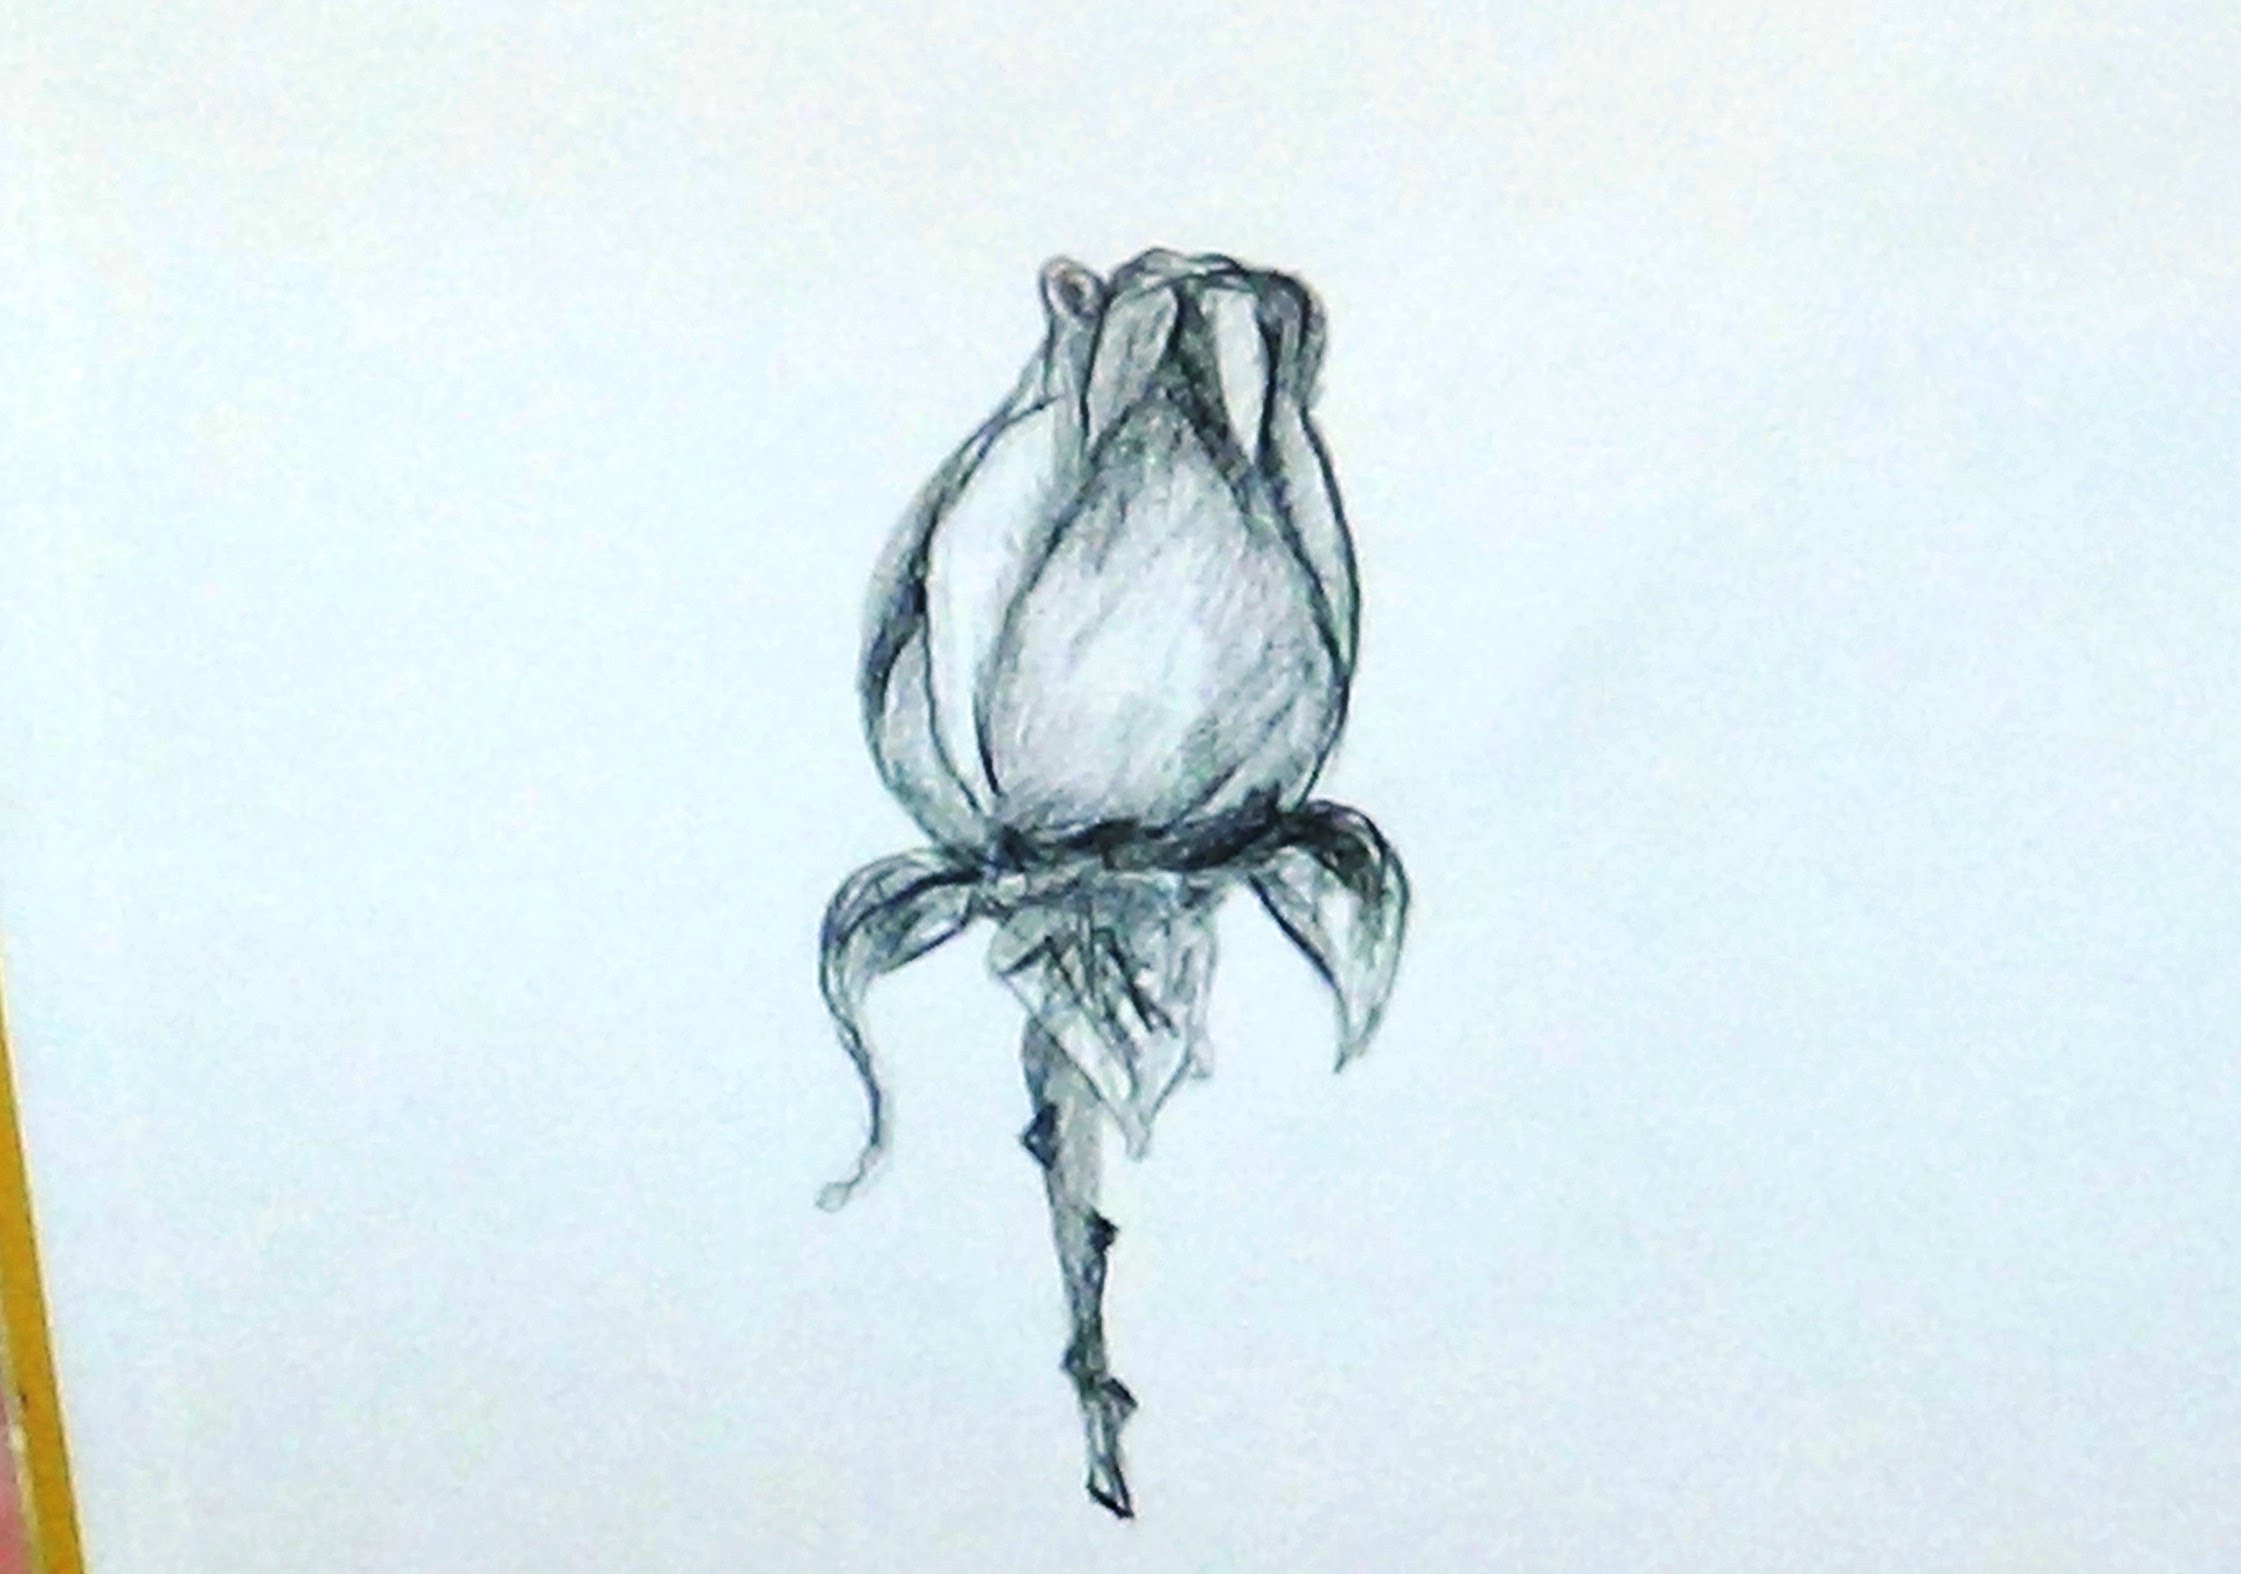 Drawn rose rose bud For A How To With